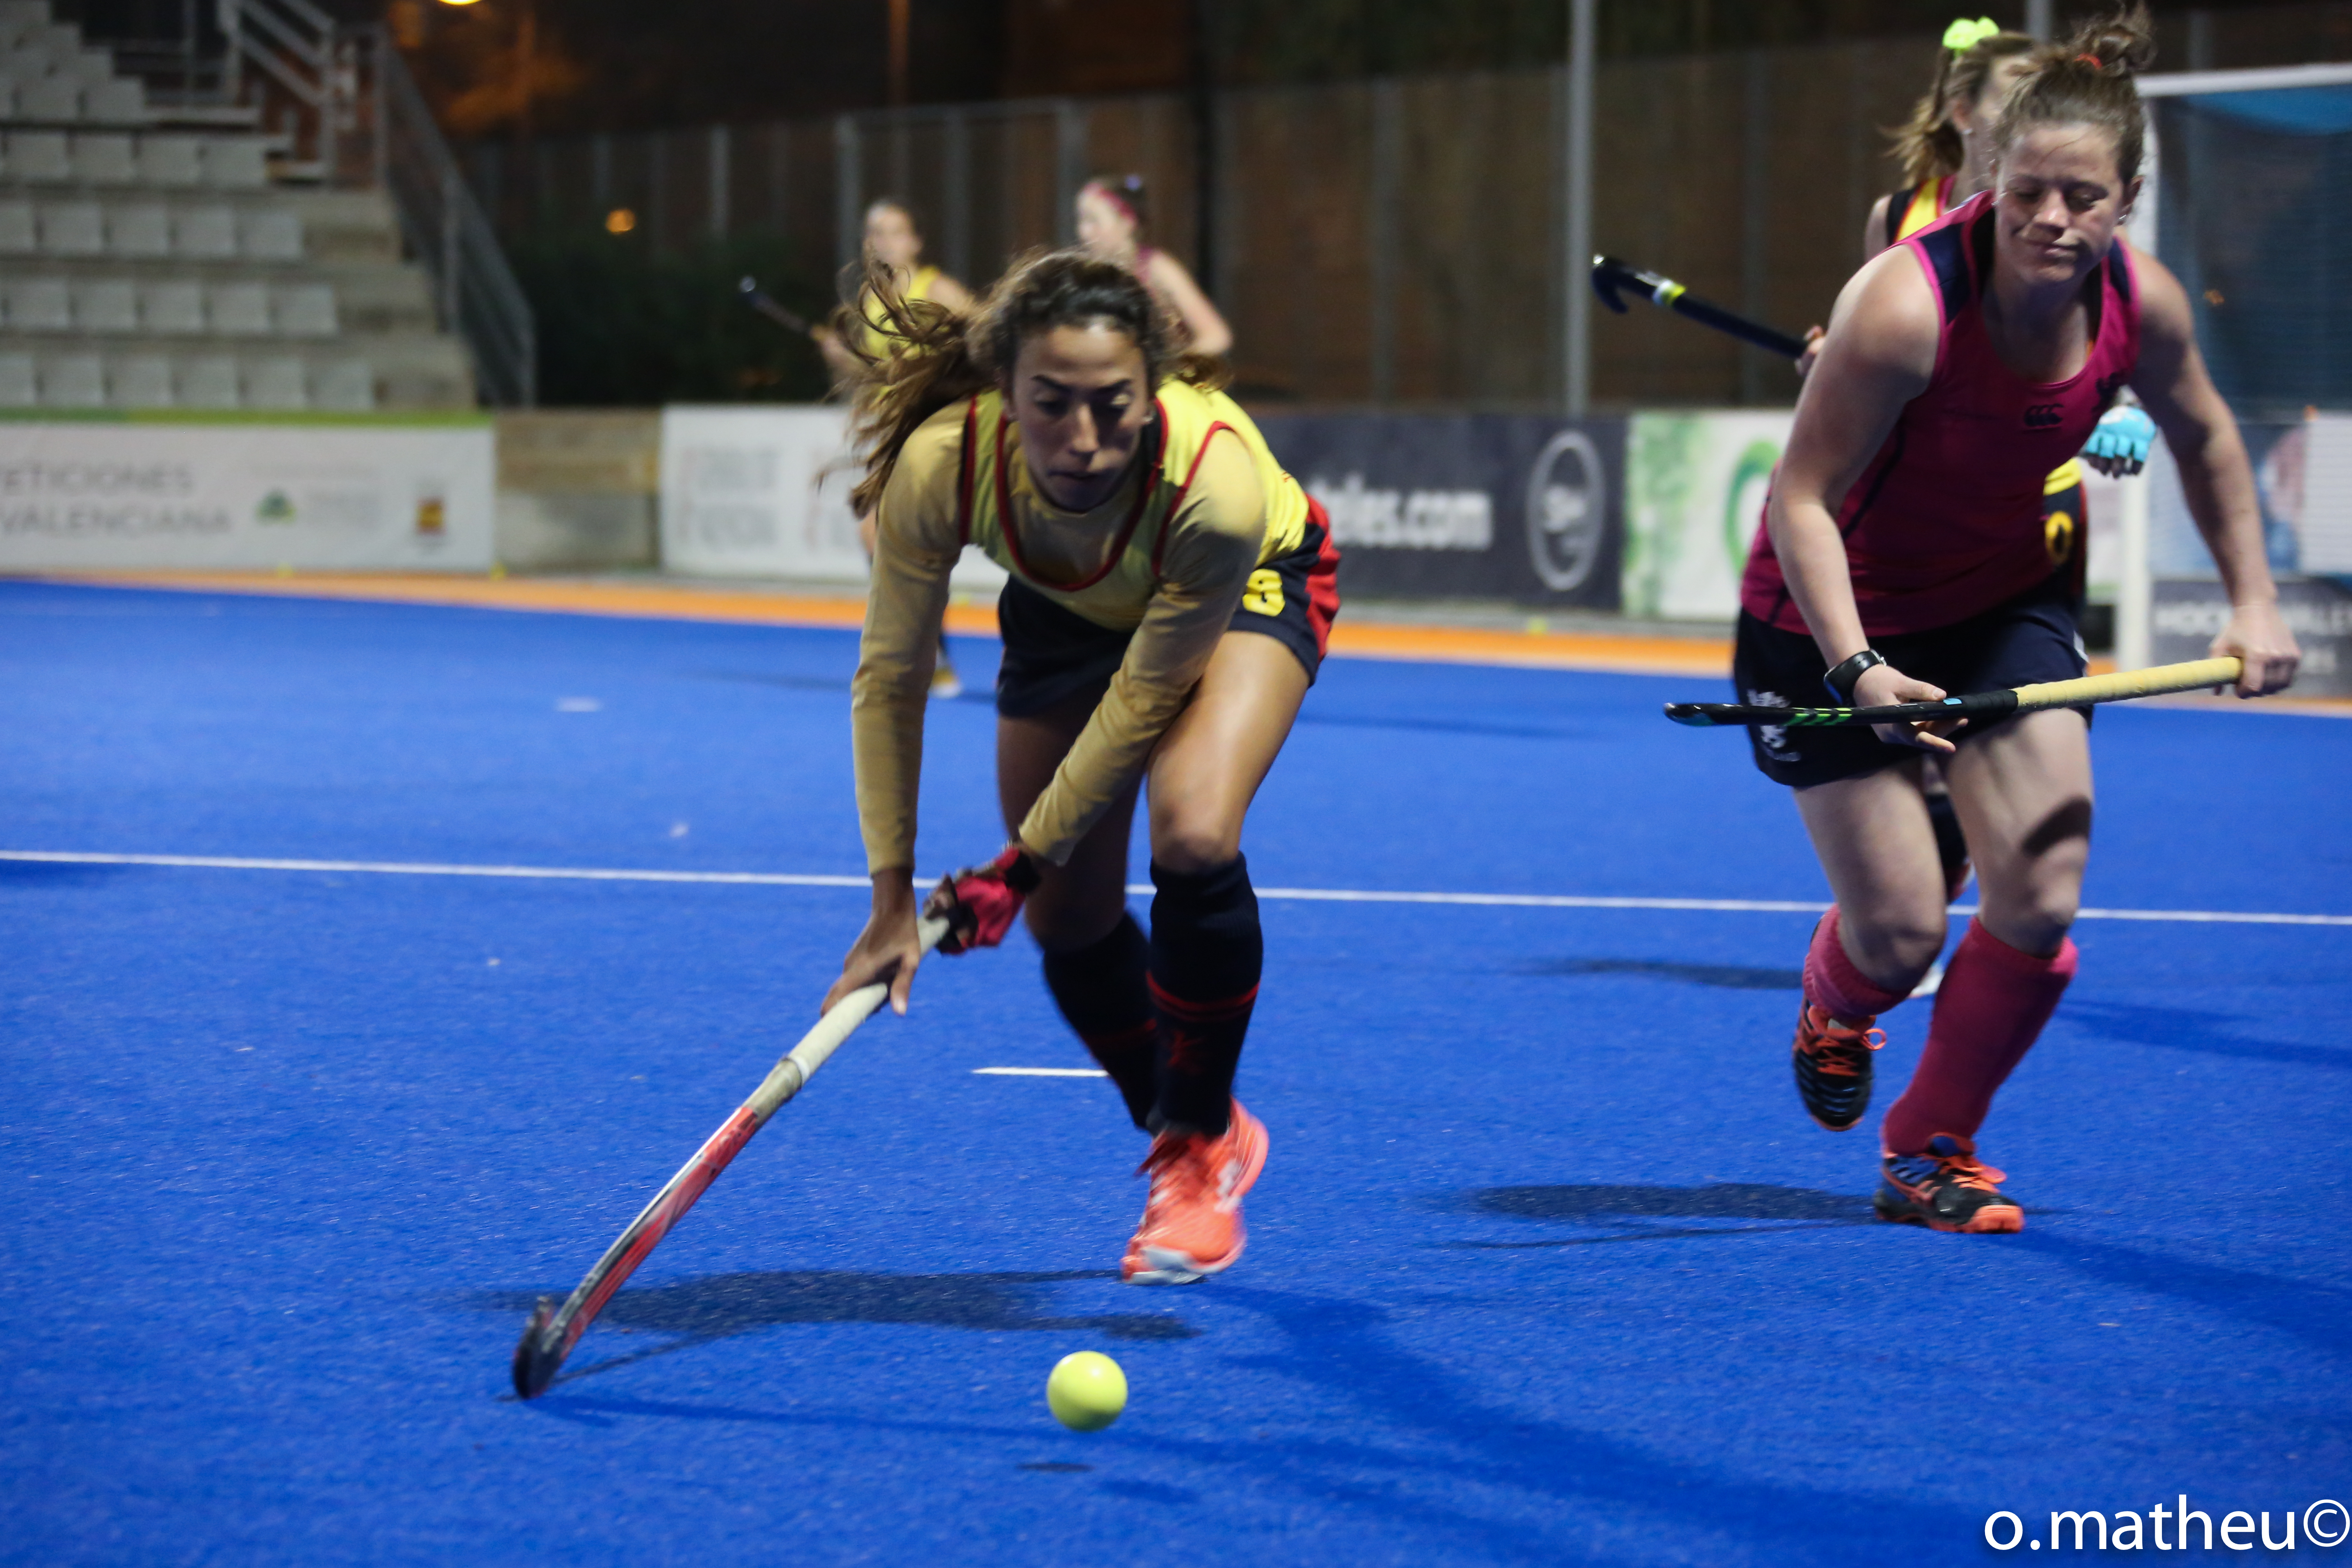 Todo listo para la Valencia Hockey World League